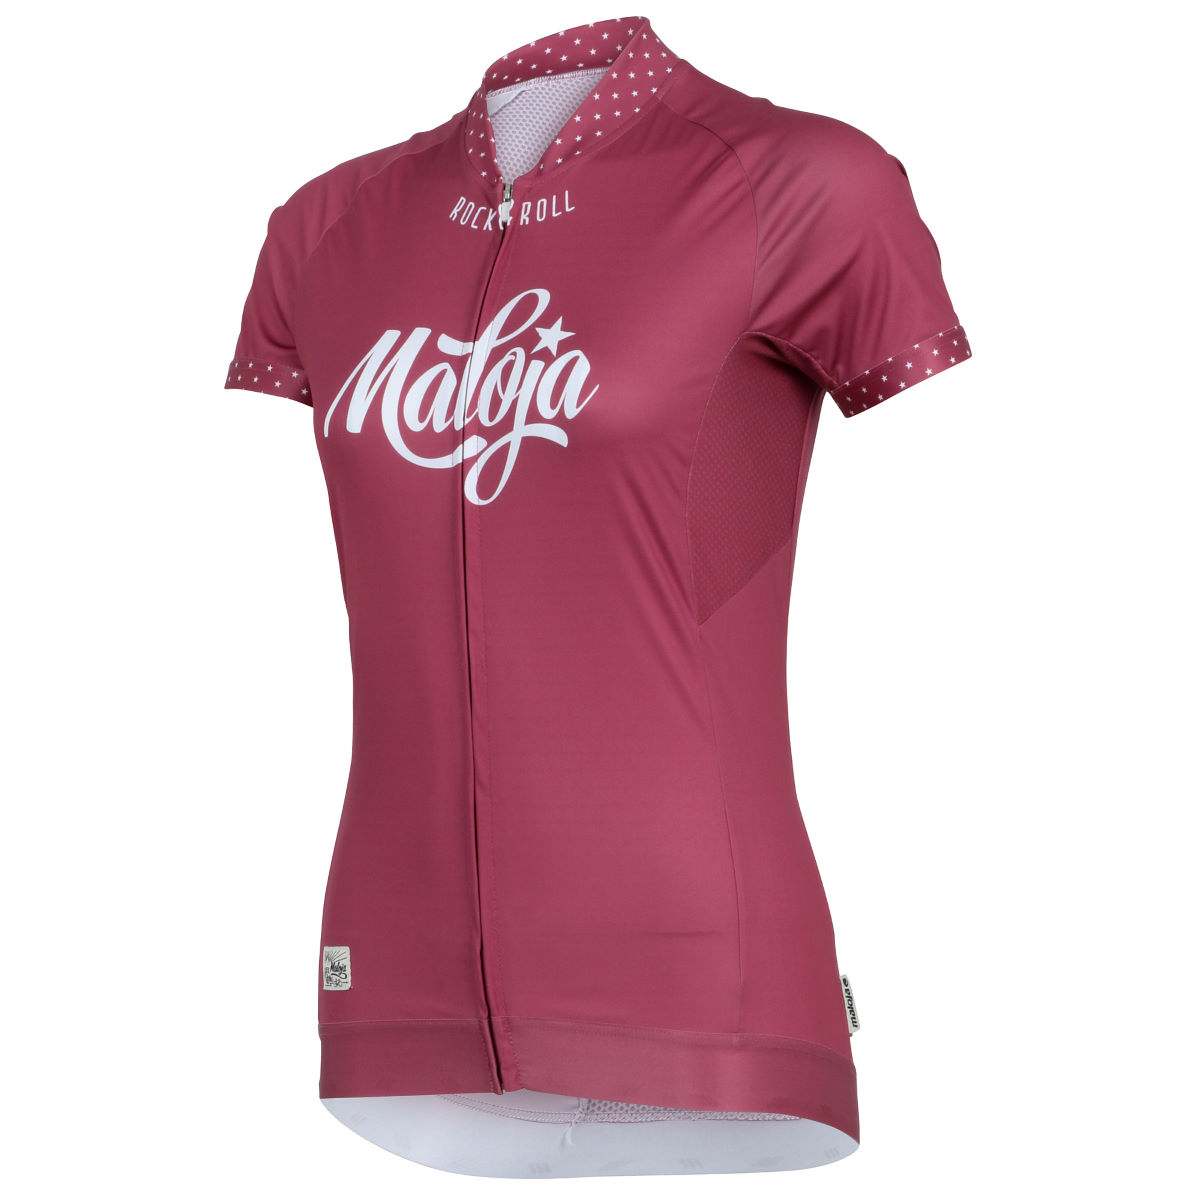 Maillot Femme Maloja HollyM. (manches courtes) - S Rose